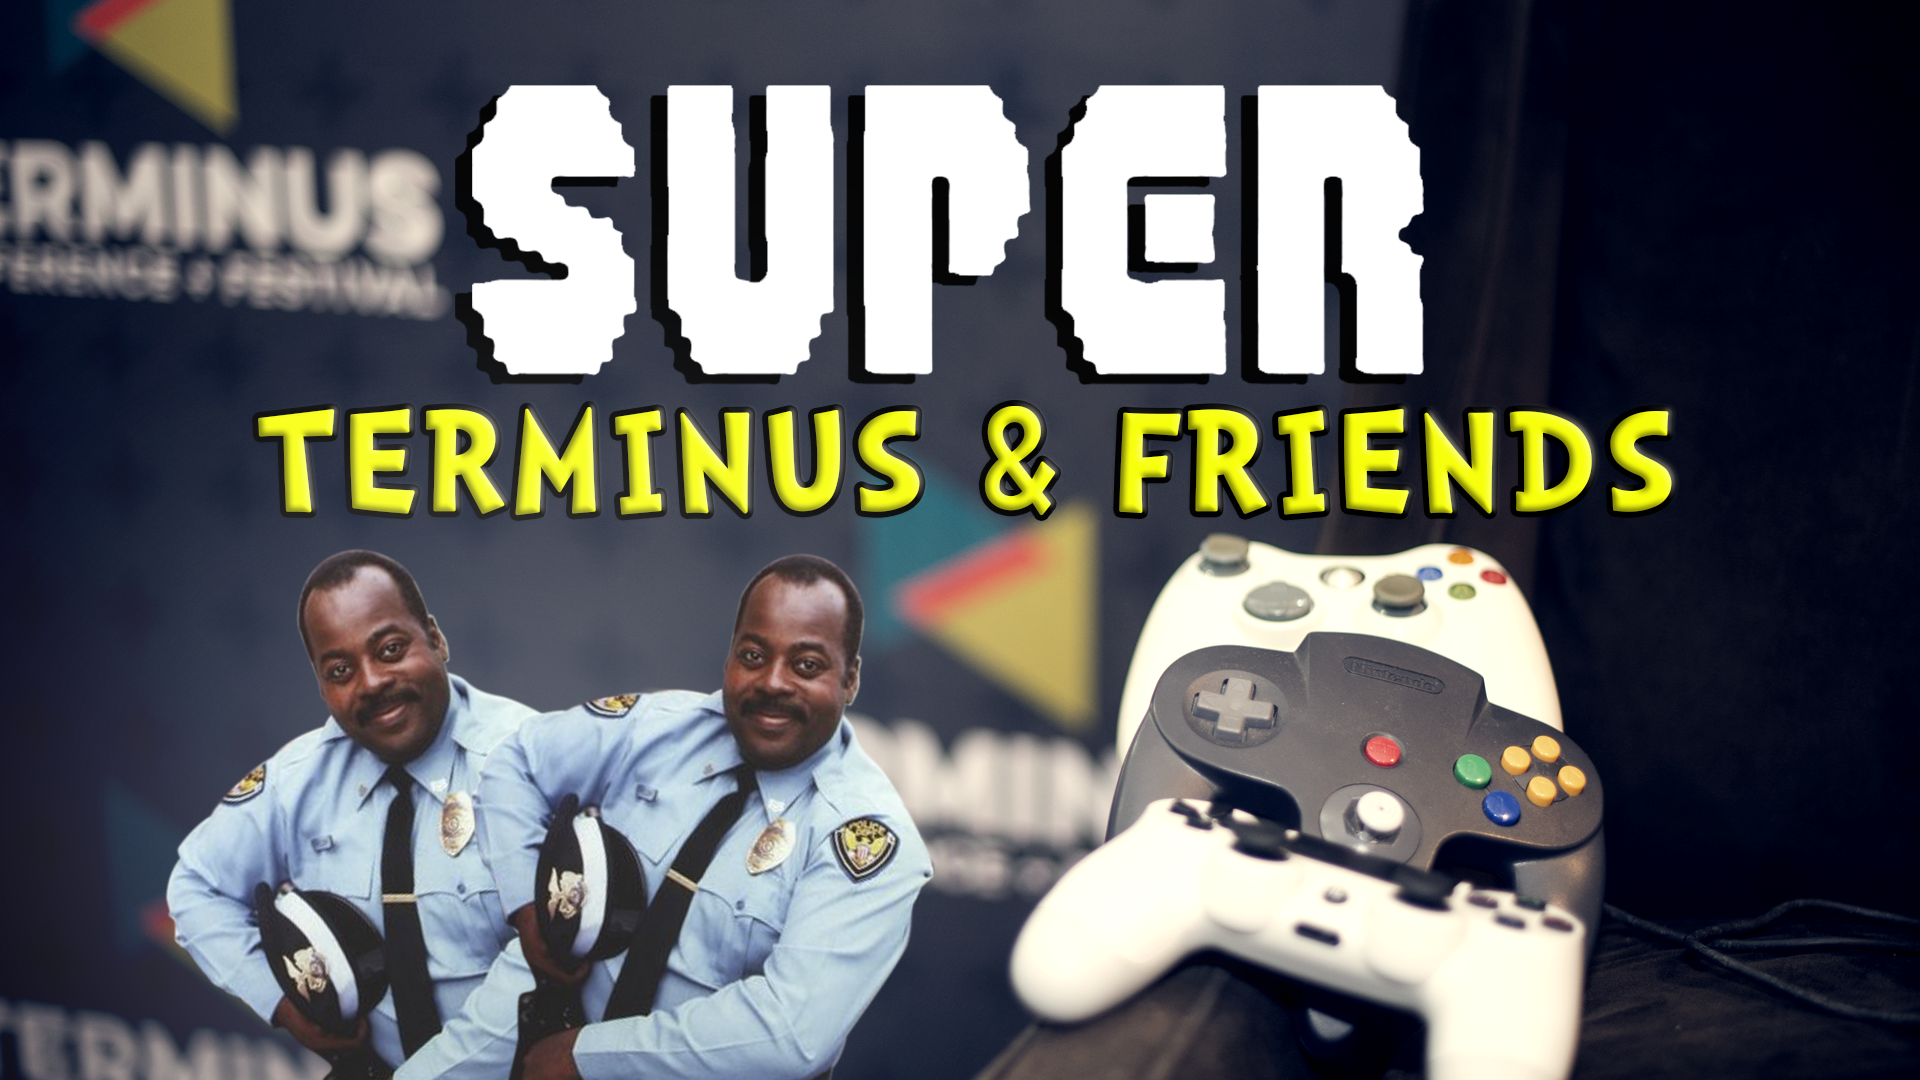 TERMINUS & Friends with the creators of Twin Cop!